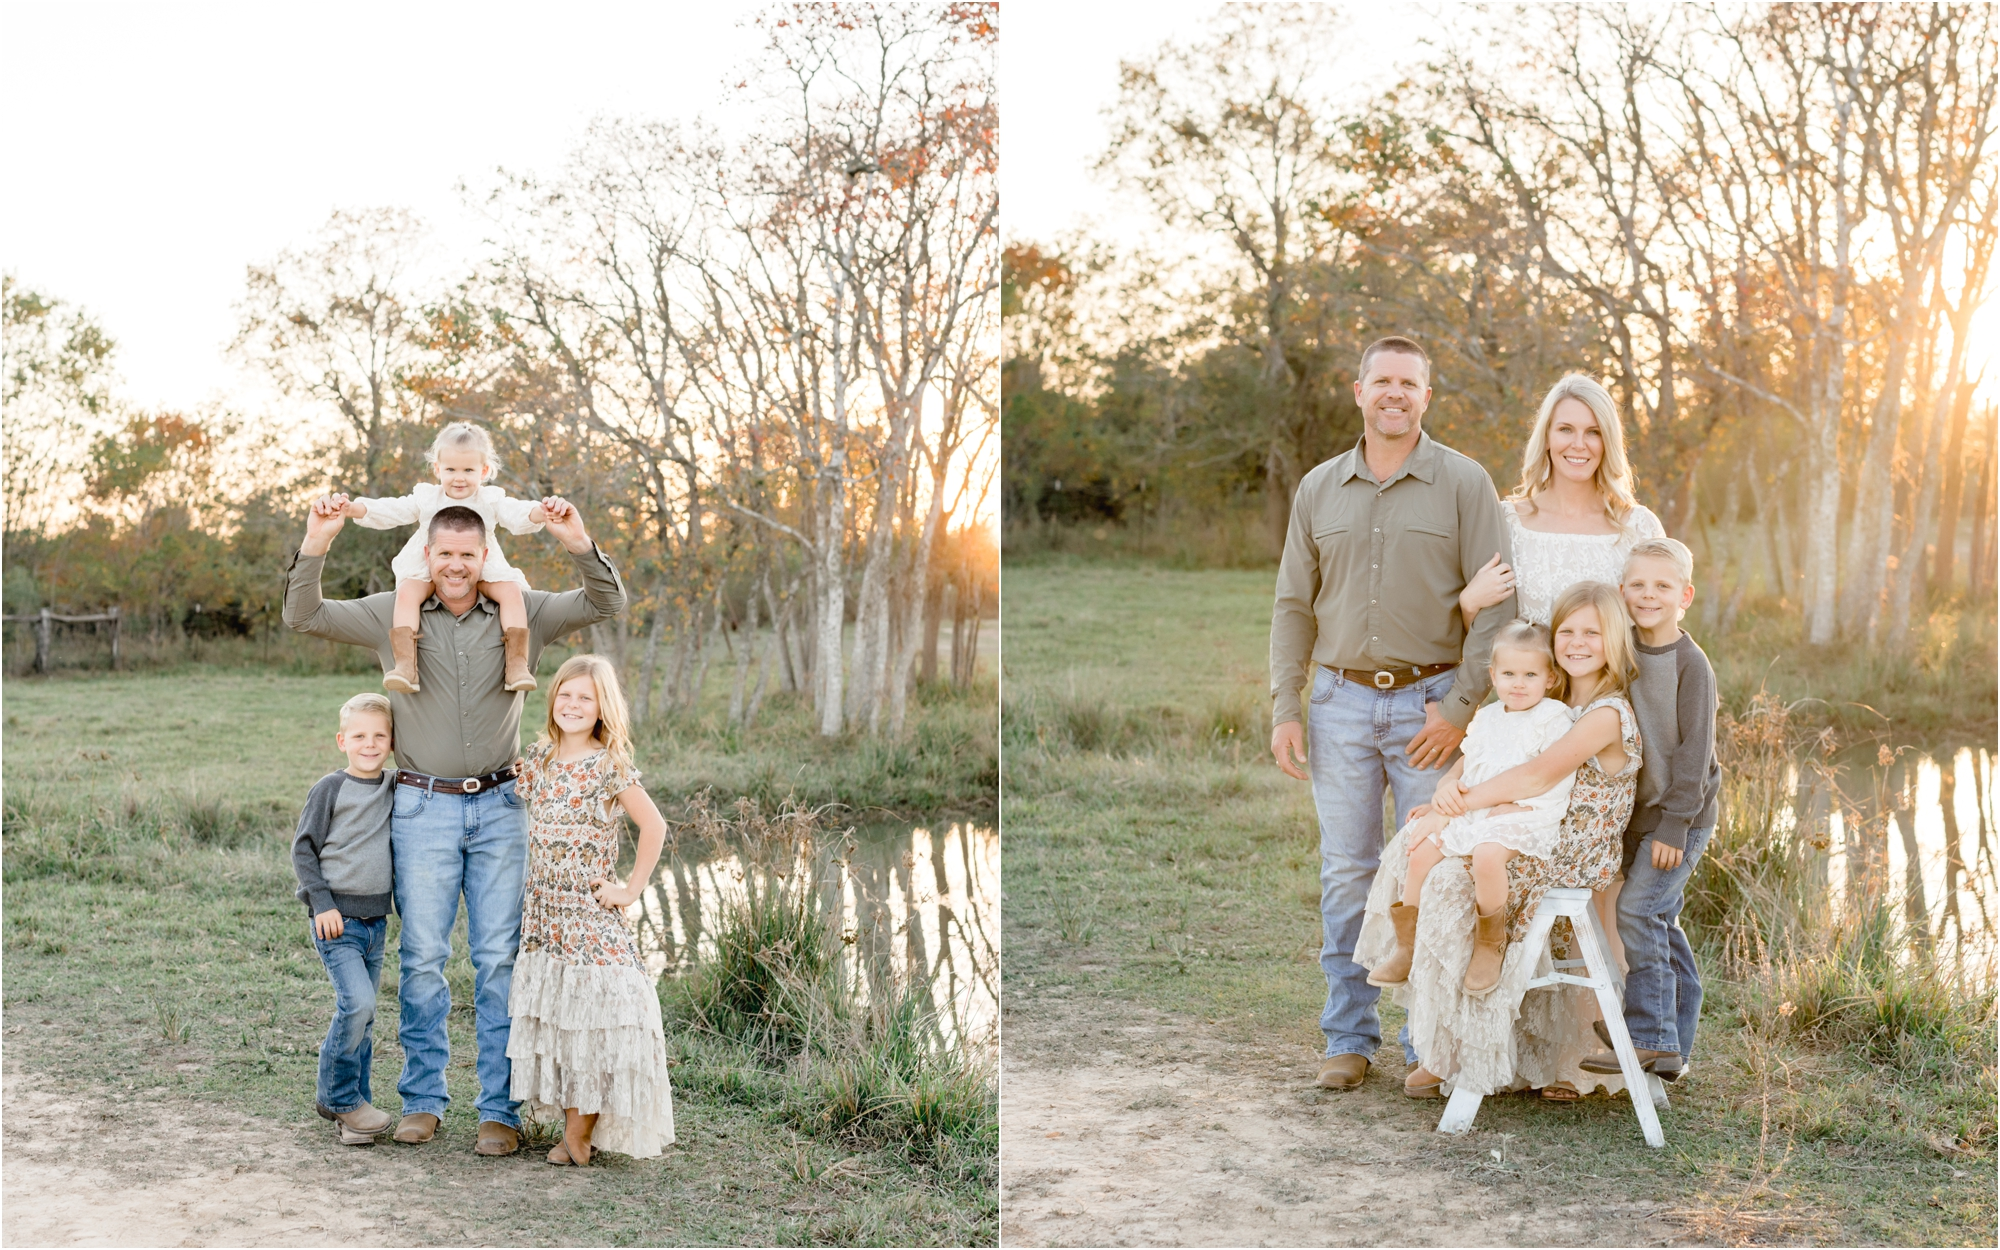 Family portraits near pond on property in Katy, TX. Photos by Katy family photographer, Lifetime of Clicks Photography.